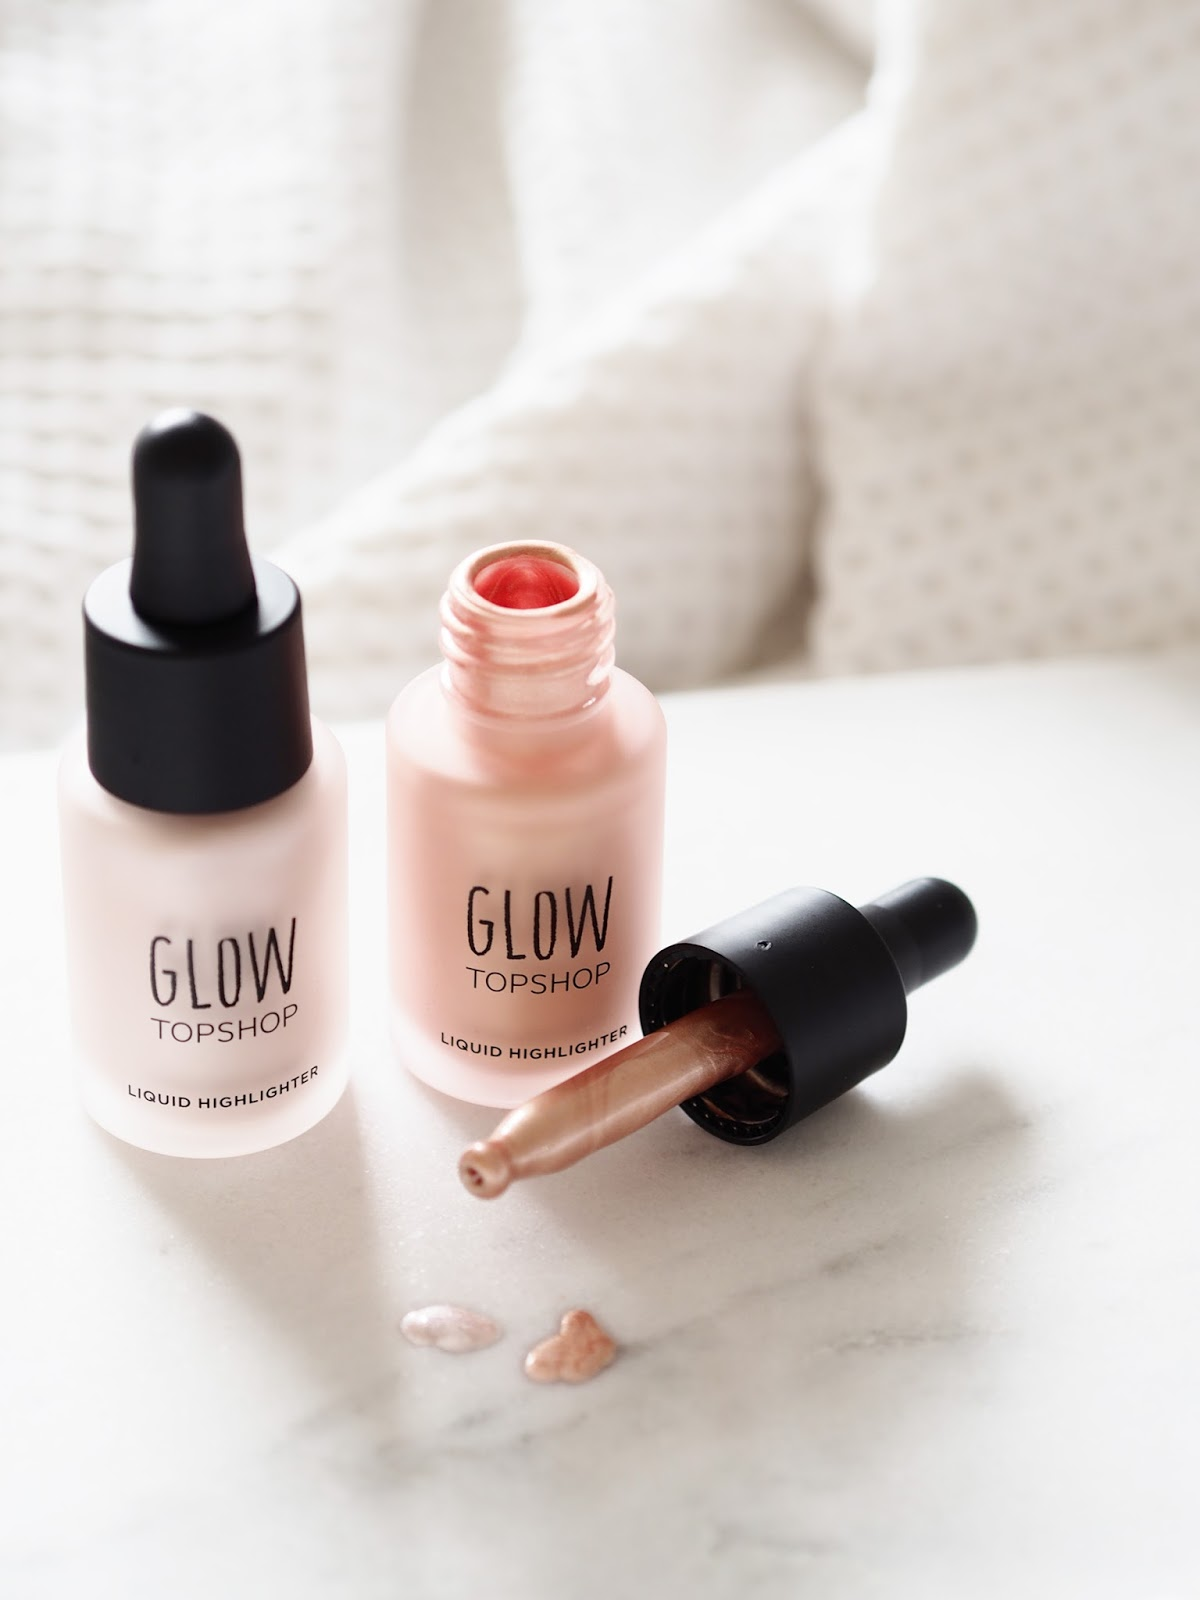 Topshop Glow Liquid Highlighter